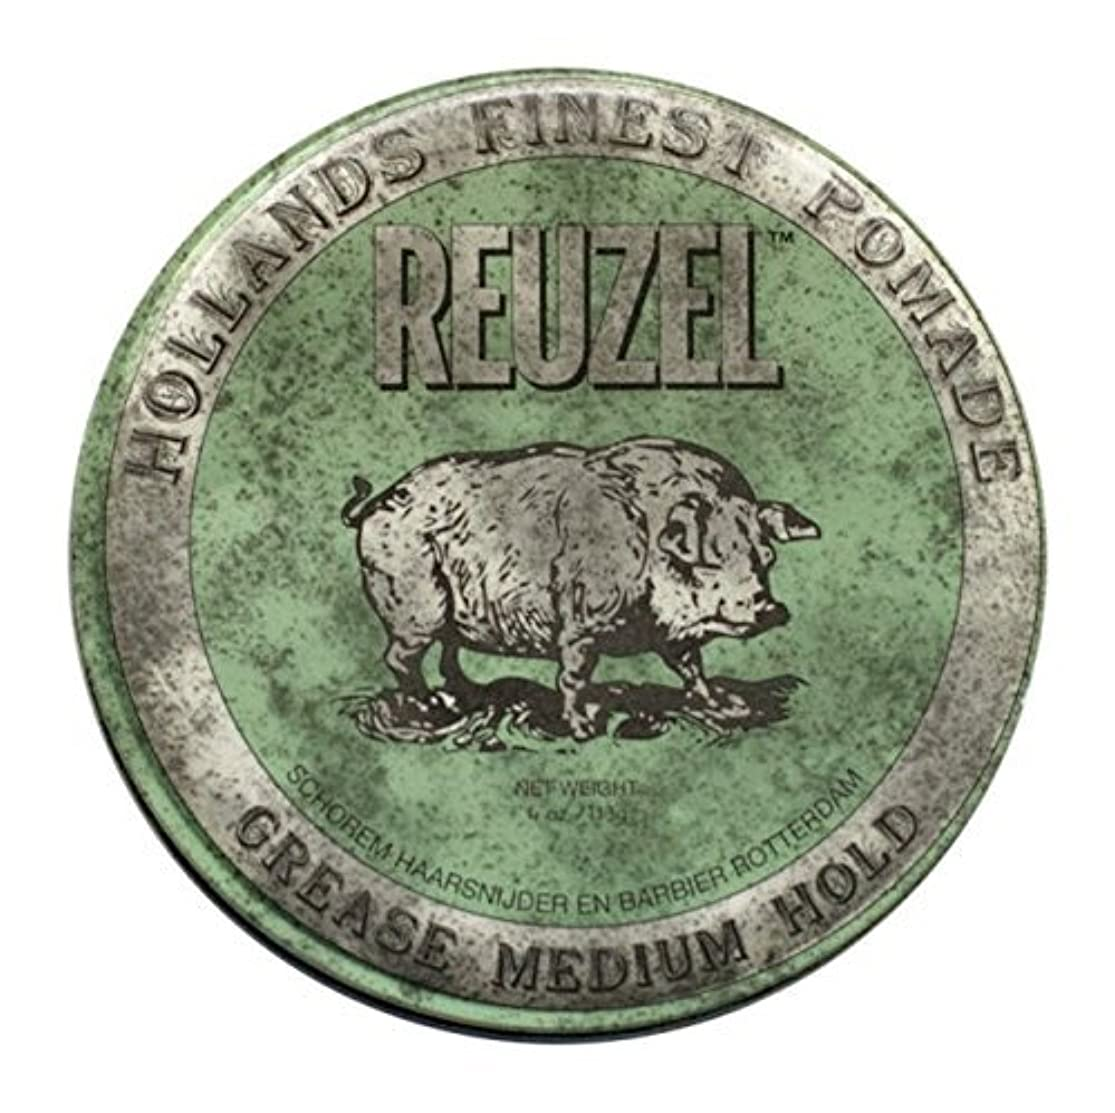 とげのある強風データベースREUZEL Grease Hold Hair Styling Pomade Piglet Wax/Gel, Medium, Green, 1.3 oz, 35g [並行輸入品]